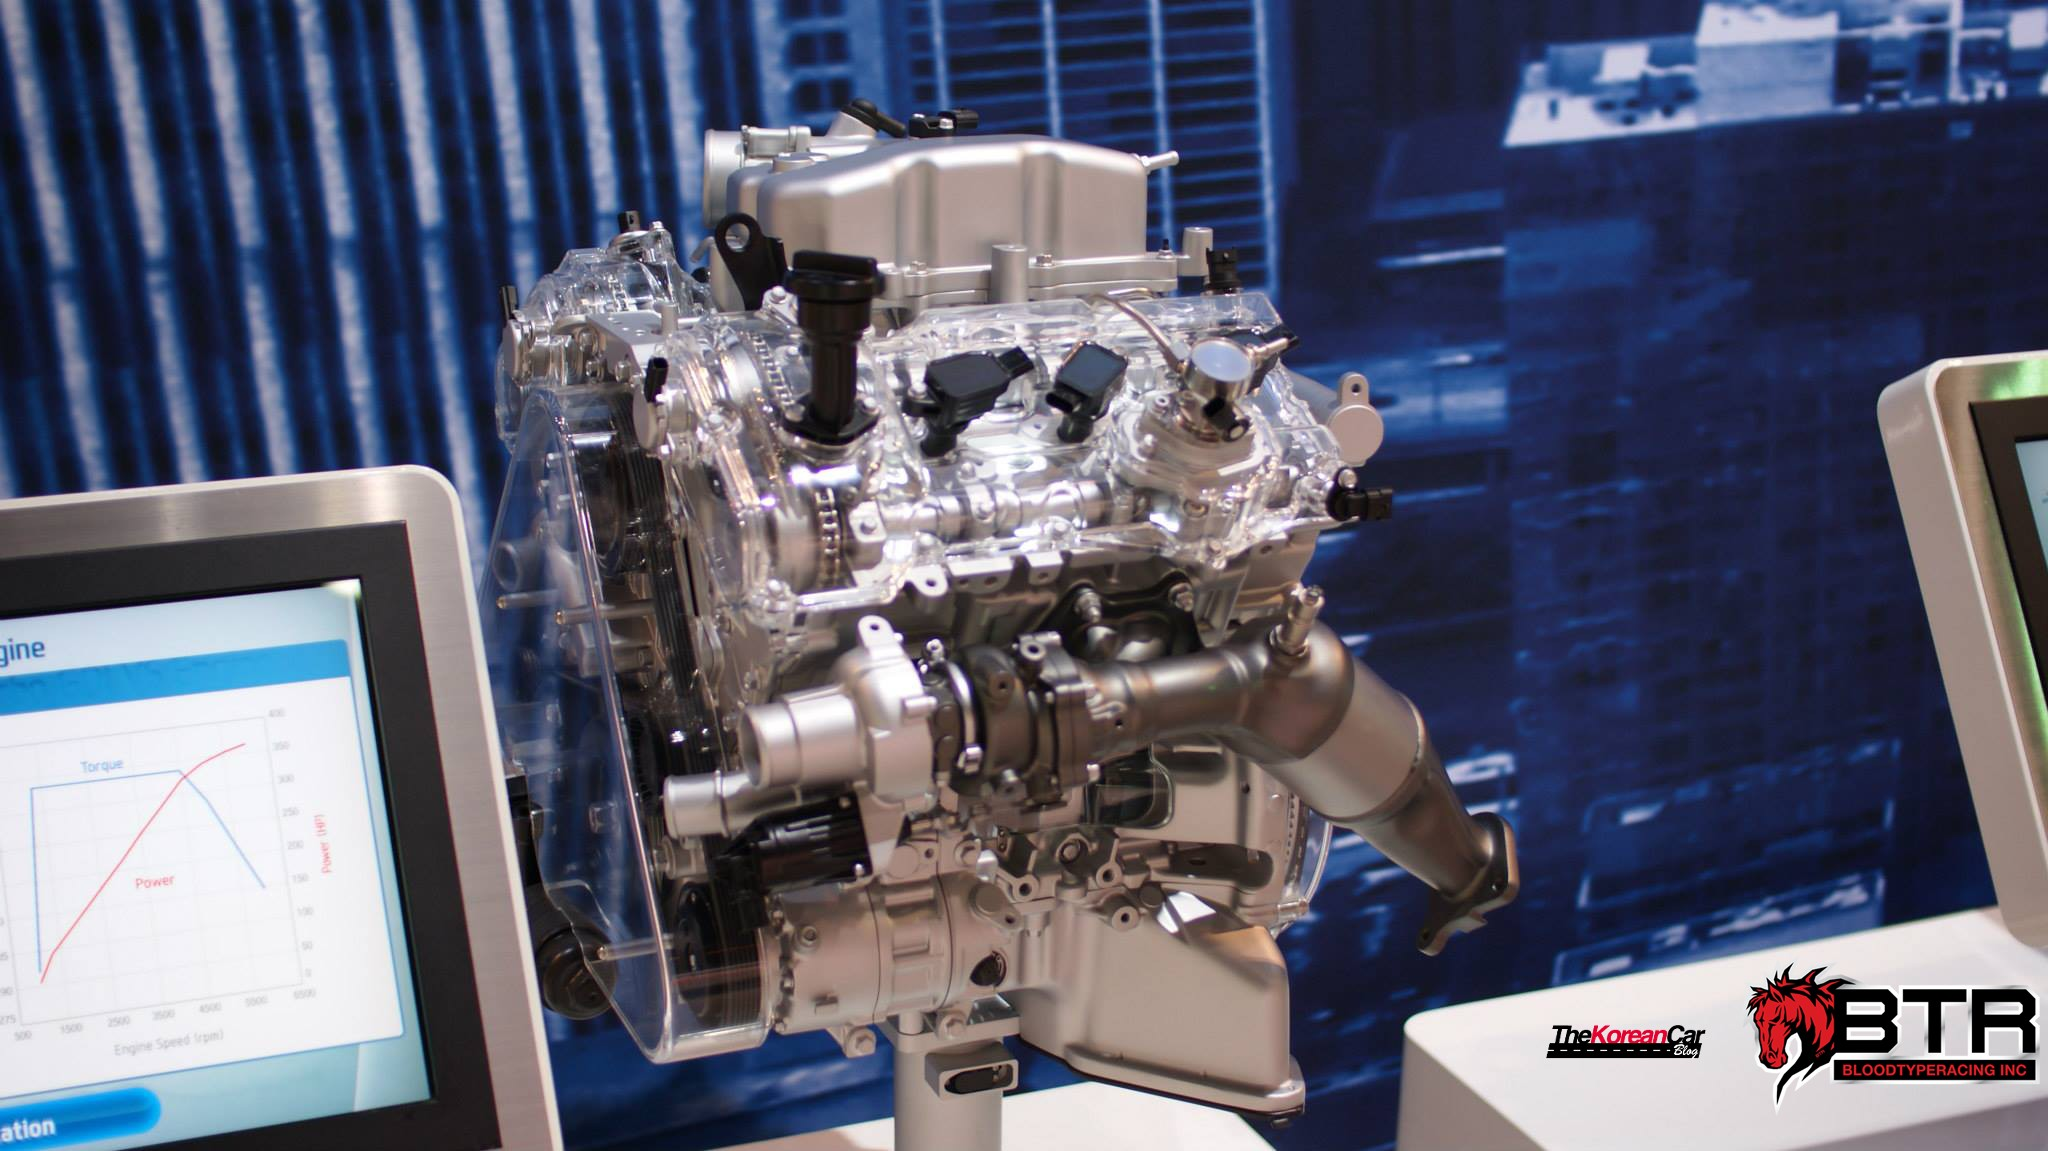 4 0 Liter Ford Engine Diagram Hyundai S 3 3 Twin Turbo Gdi V6 Detailed For The First